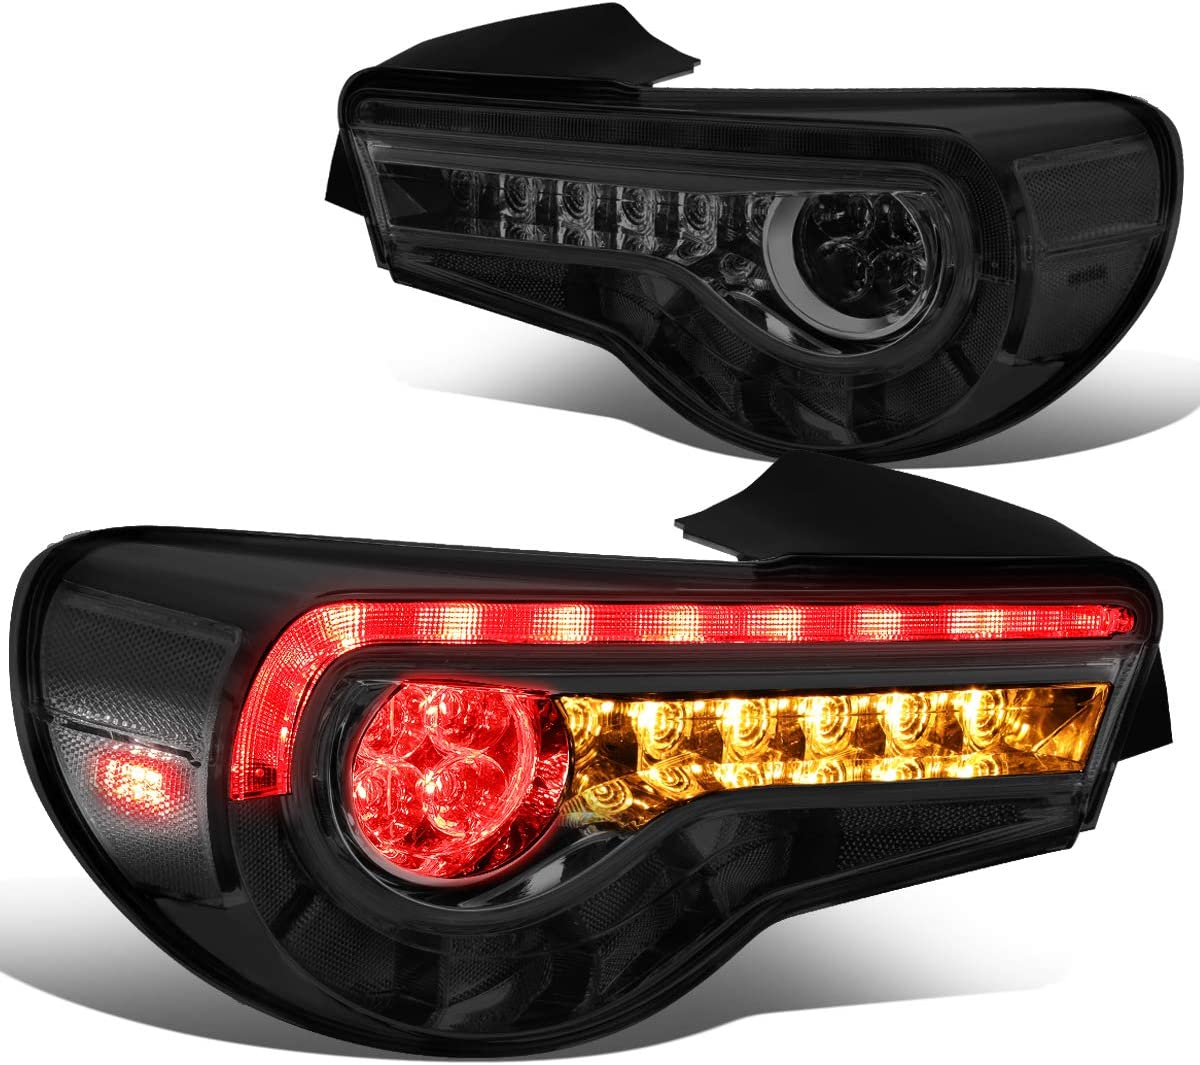 Replacement for 13-18 Scion FR-S/86/Subaru BRZ Smoked Housing Sequential LED Turn Signal Tail Light Brake Lamps